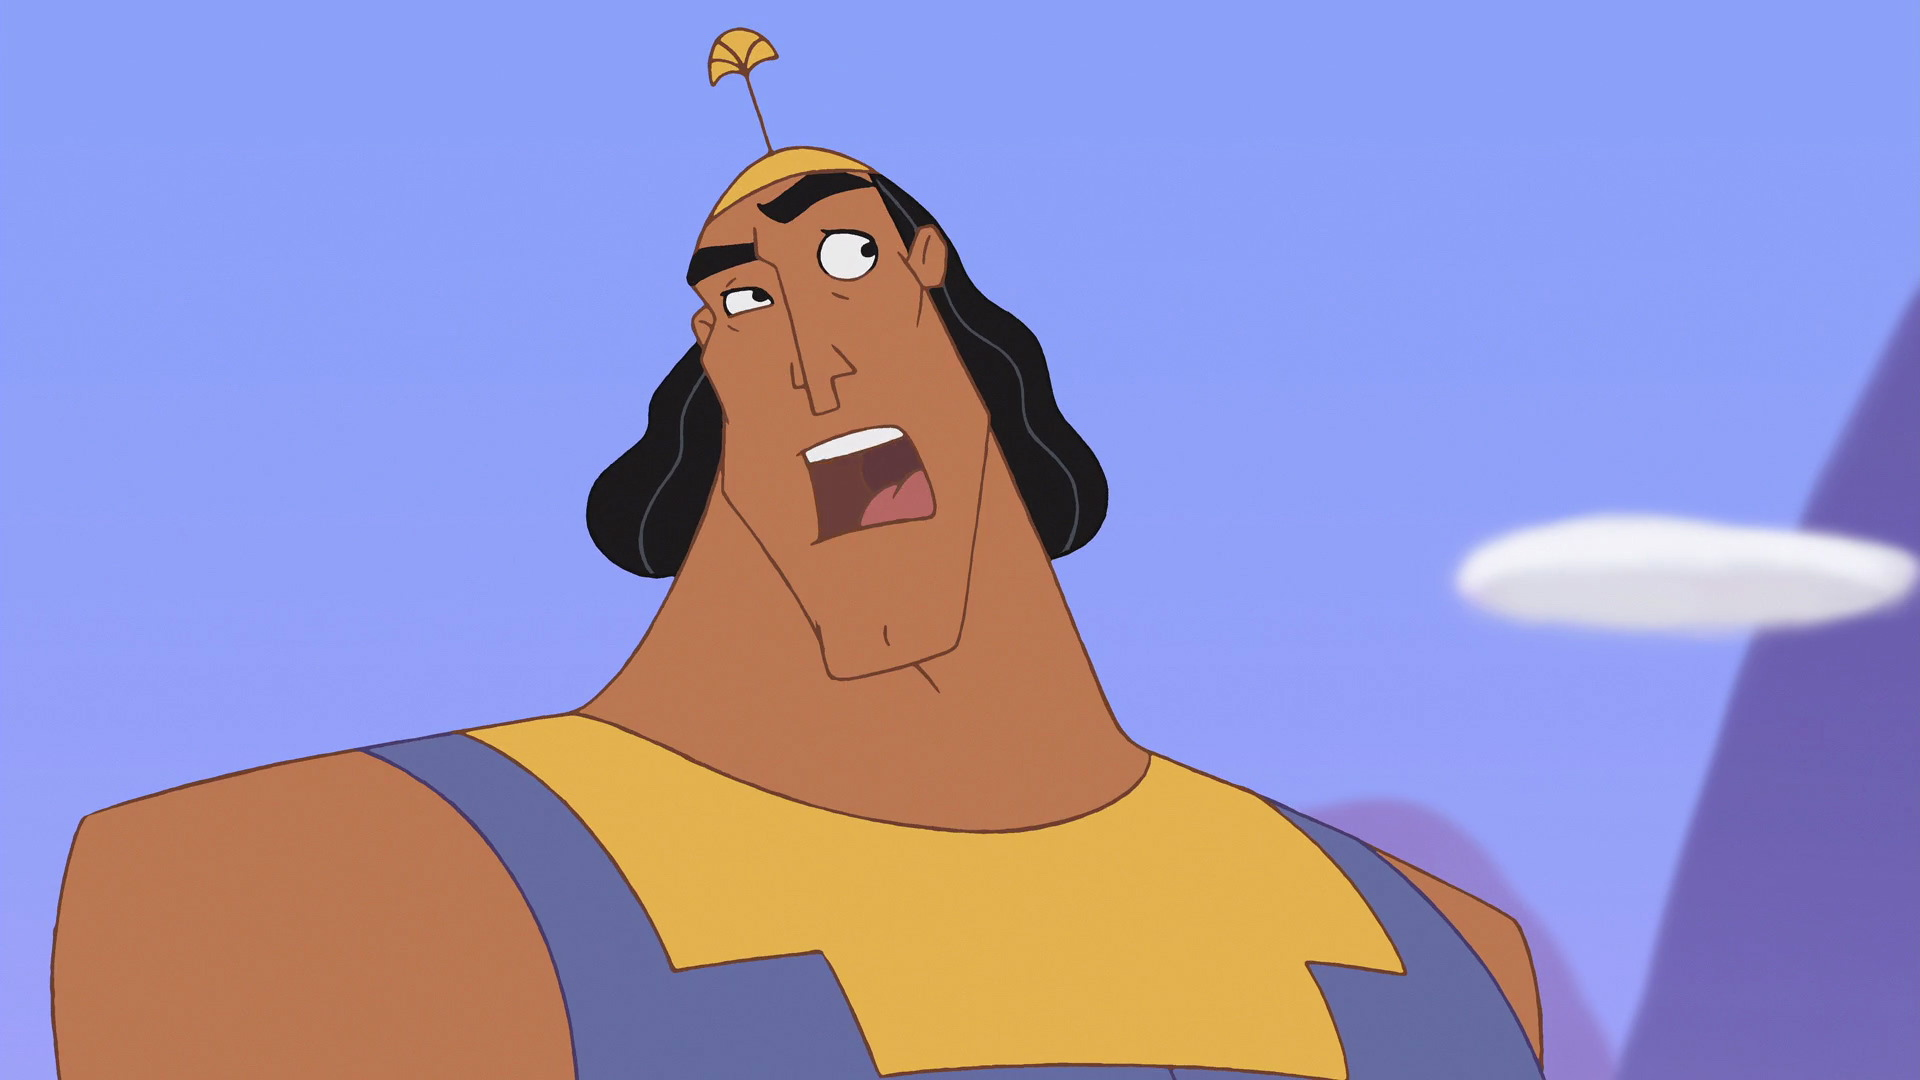 http://caps.pictures/200/5-emperor-groove-2/full/kronks-new-groove-disneyscreencaps.com-3271.jpg